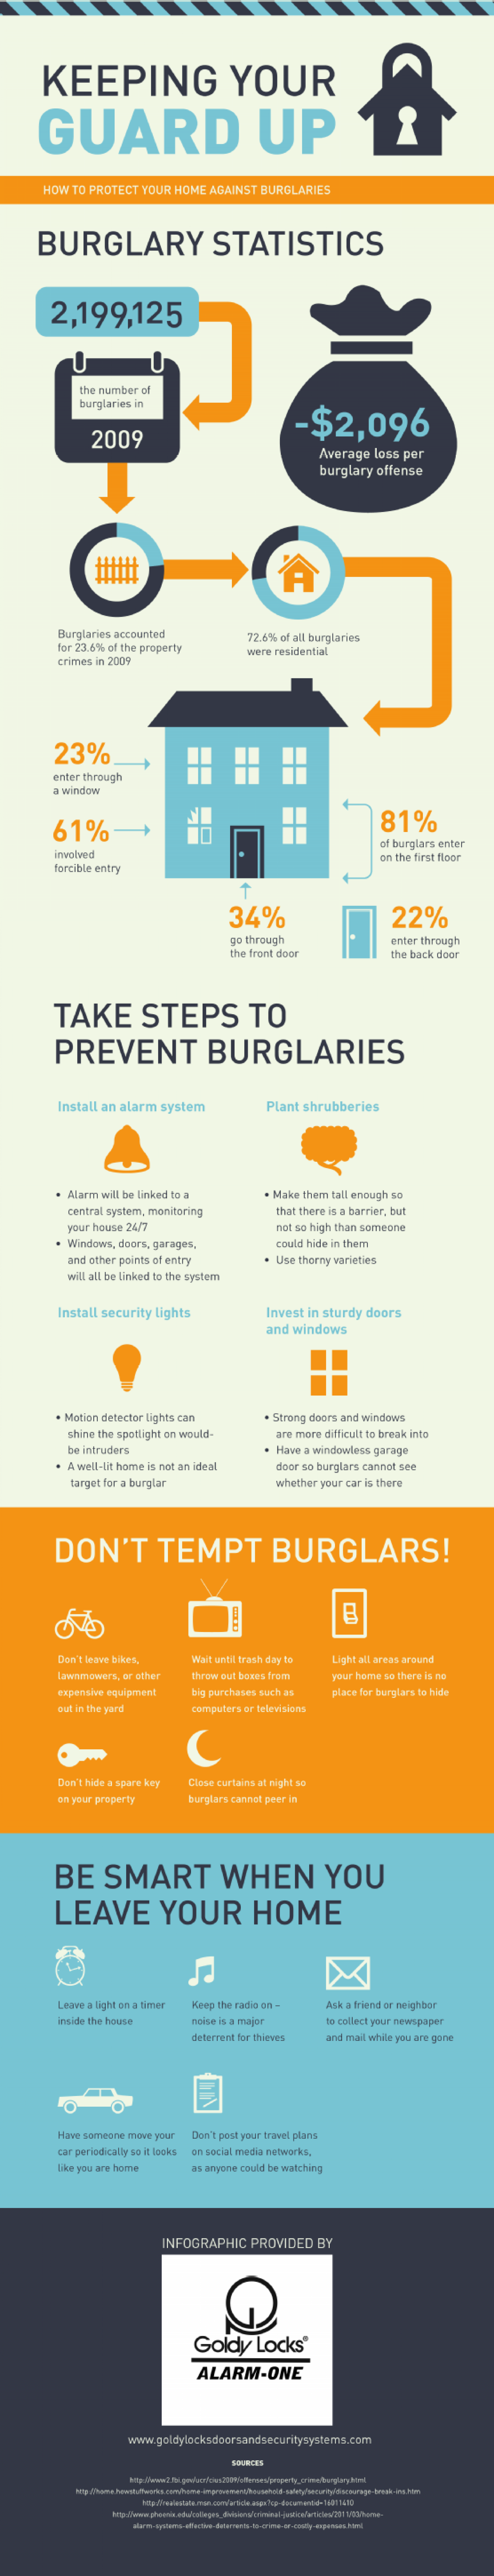 Keeping Your Guard Up: How to Protect Your Home Against Burglaries Infographic